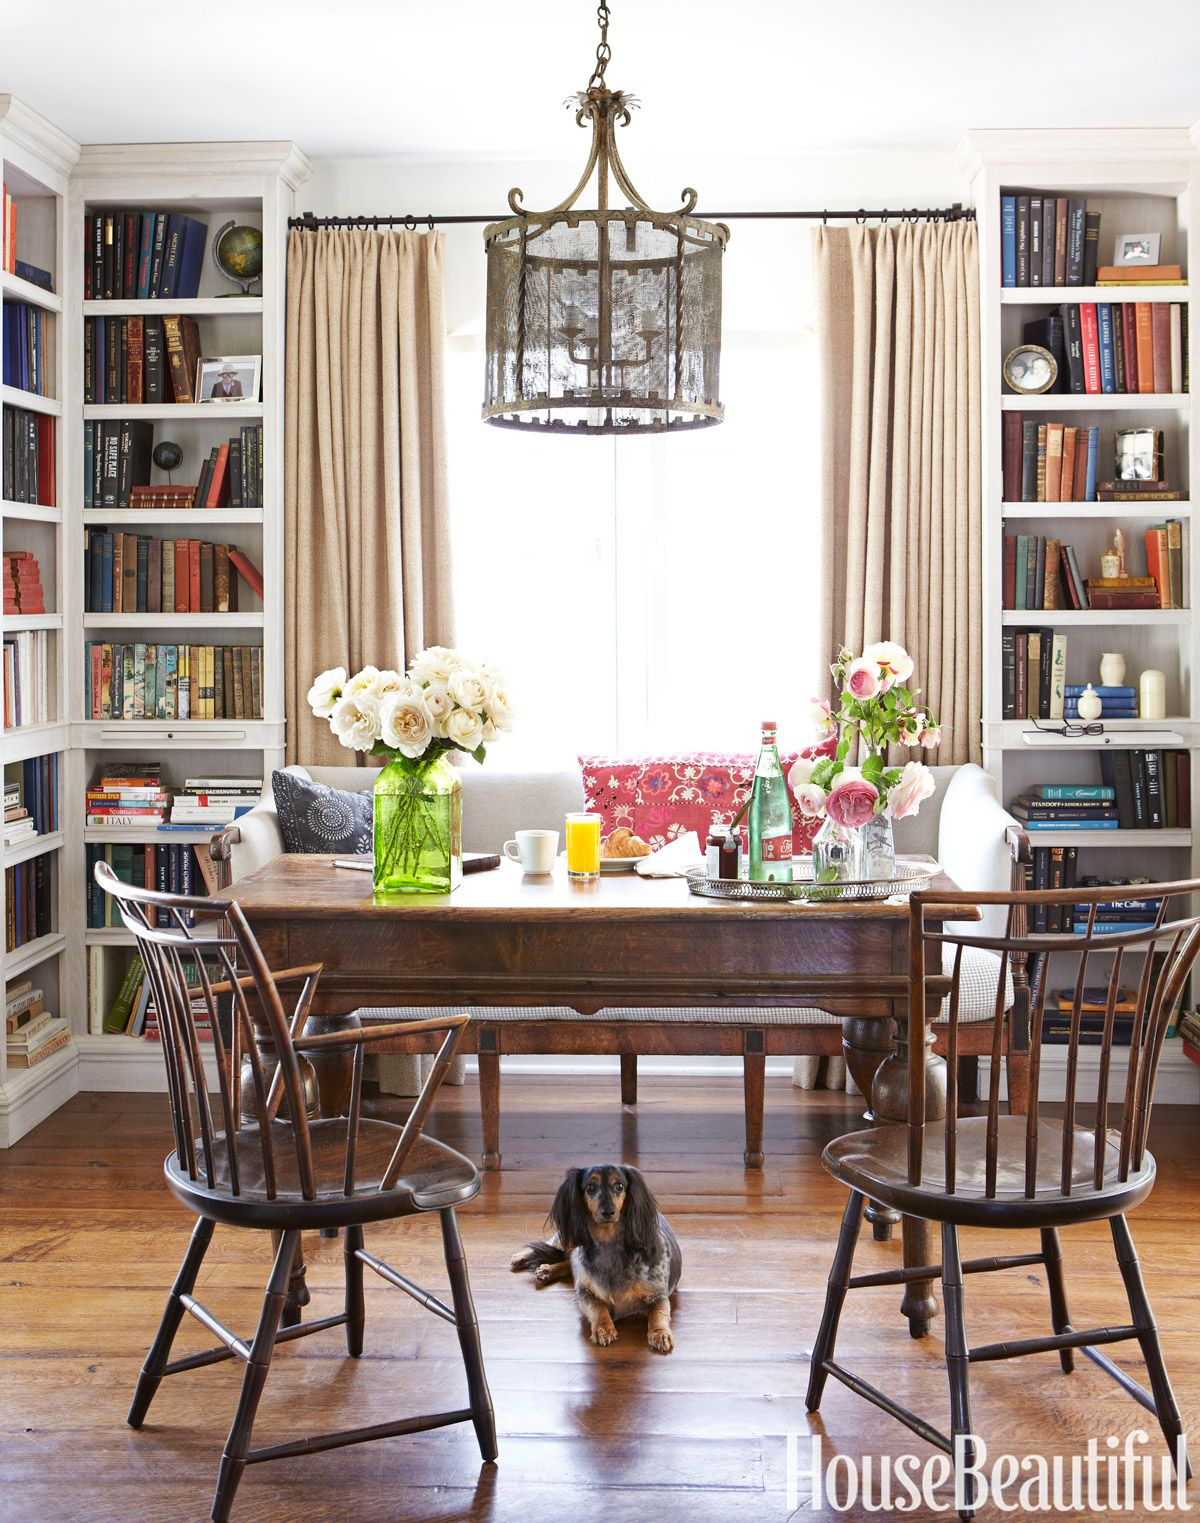 Floor to ceiling bookcases give depth to the dining